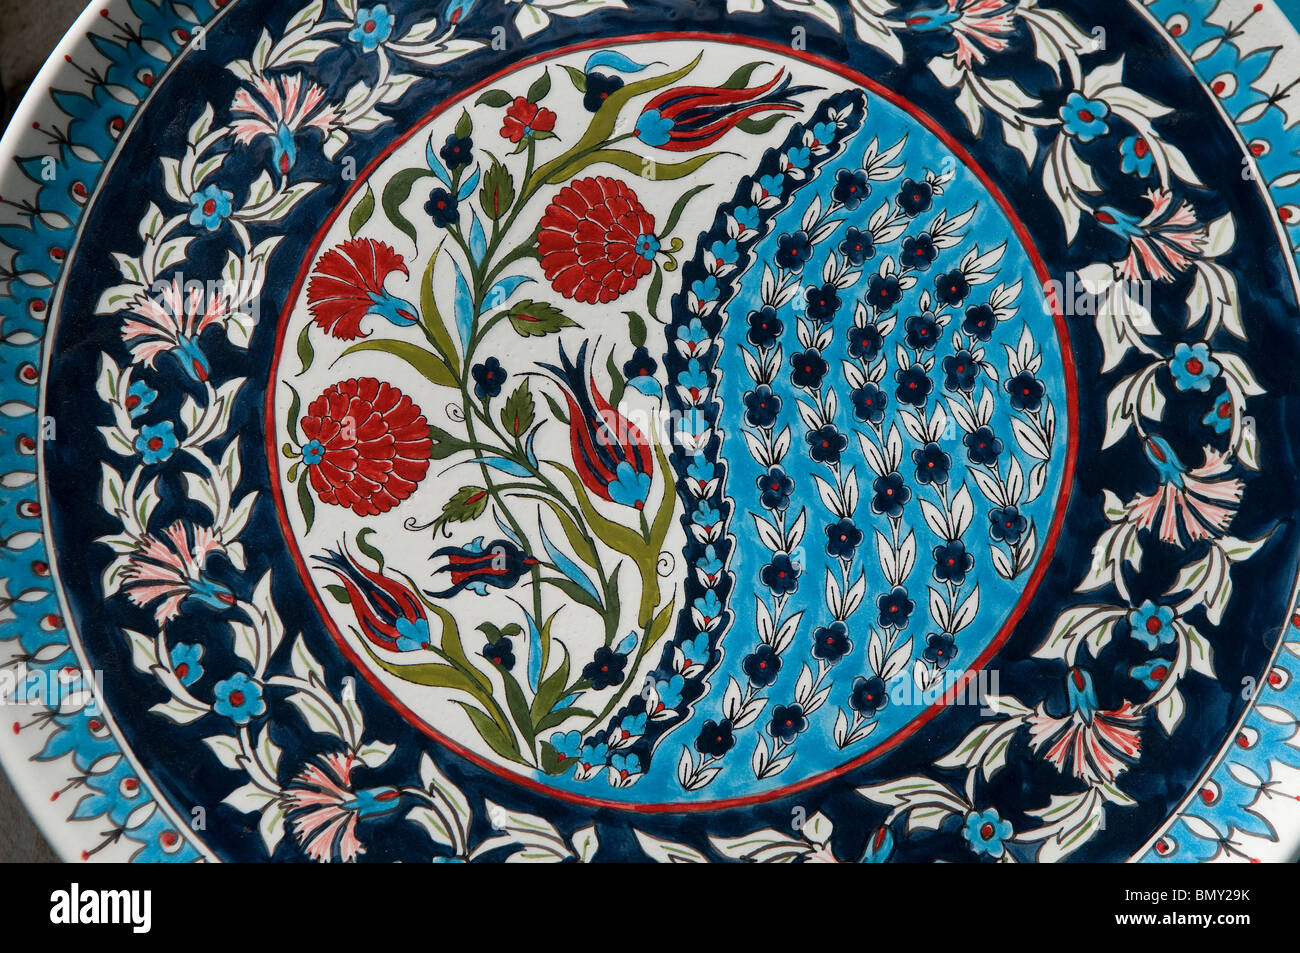 Handpainted ceramic plate at an armenian tile workshop east handpainted ceramic plate at an armenian tile workshop east jerusalem israel dailygadgetfo Images